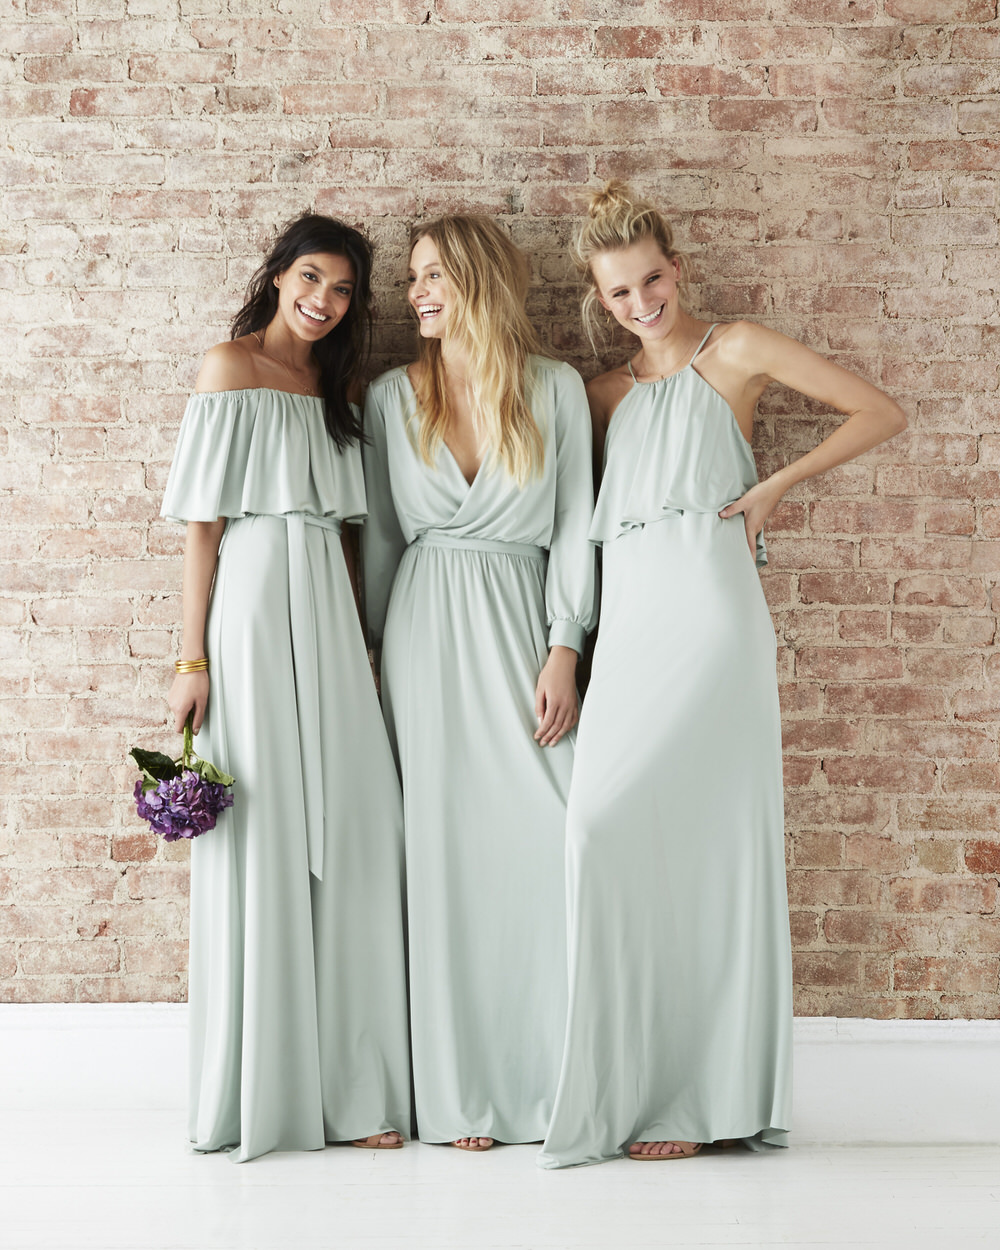 Twobirds bridesmaid party collection rock my wedding uk wedding twobirds bridesmaids ombrellifo Image collections